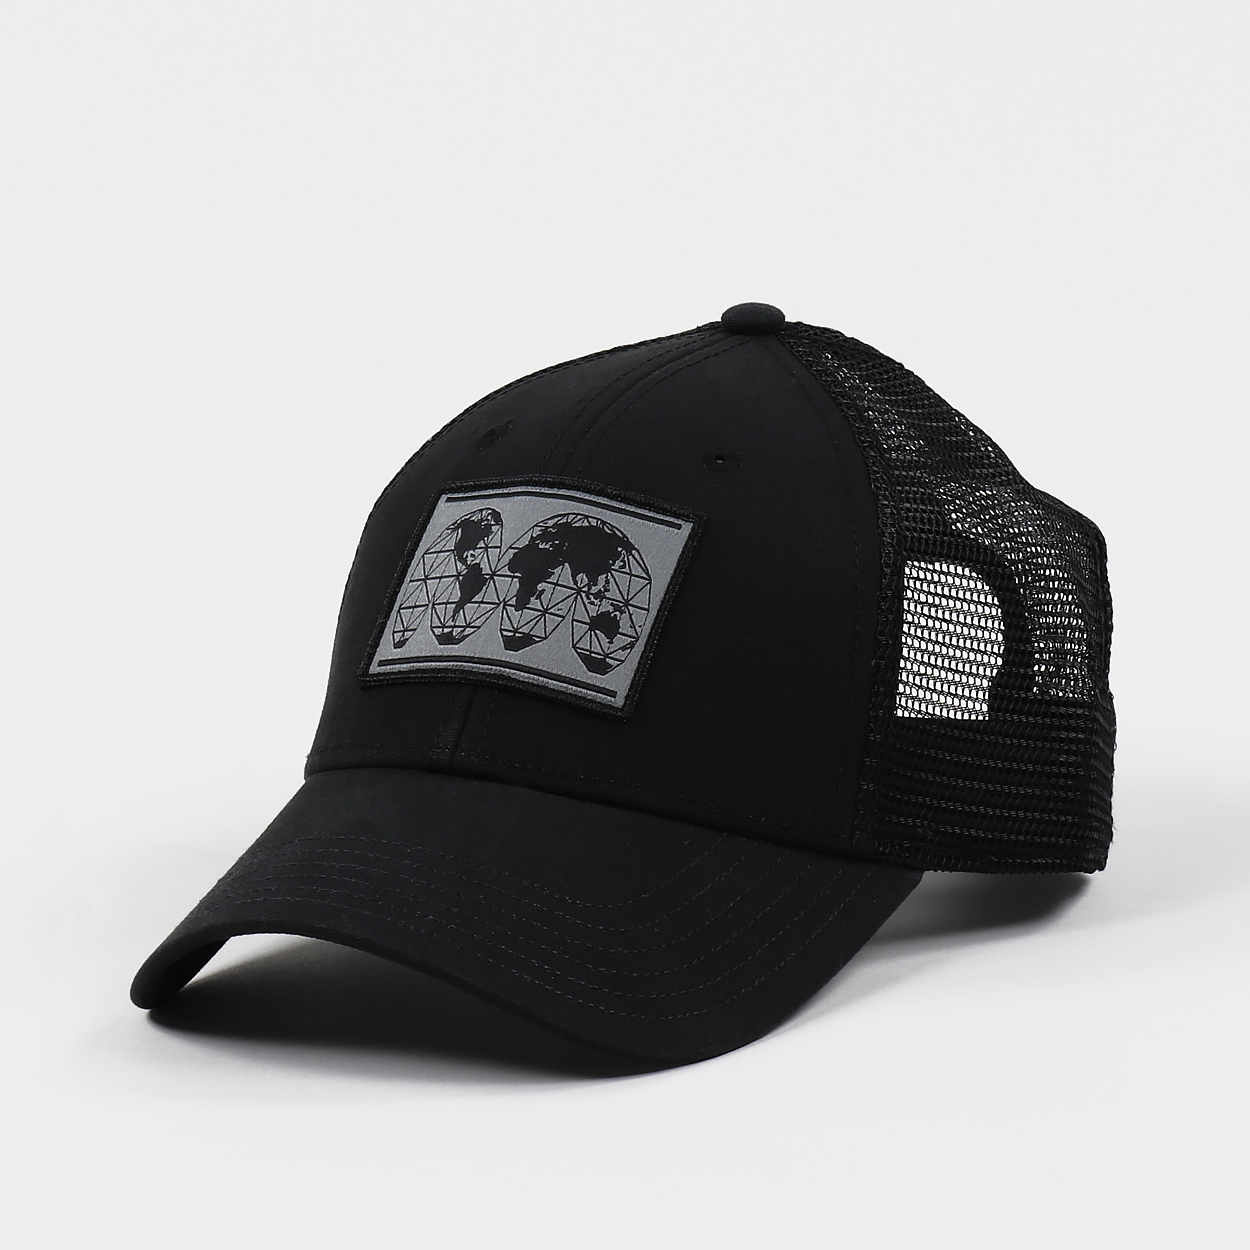 6a3fabbcca8 The North Face IC International Collection Black Trucker Hat £17.50